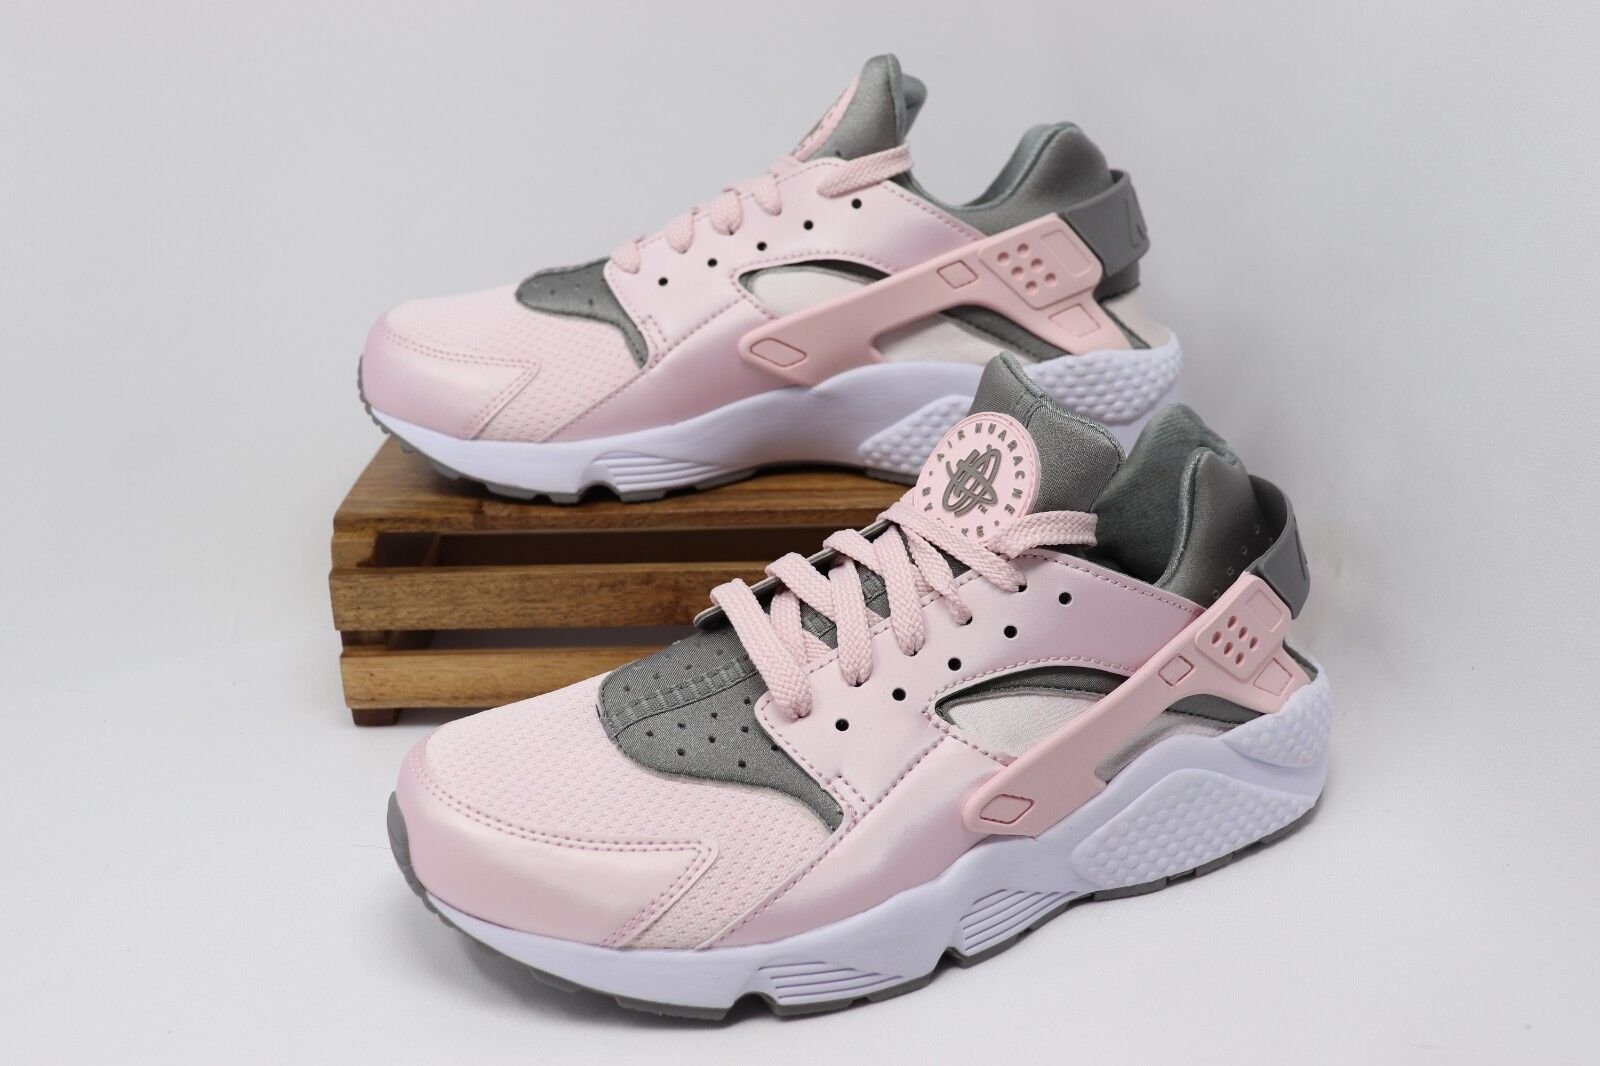 Nike Air Huarache Running shoes Arctic Pink Dusty White 318429-610 Men's NEW